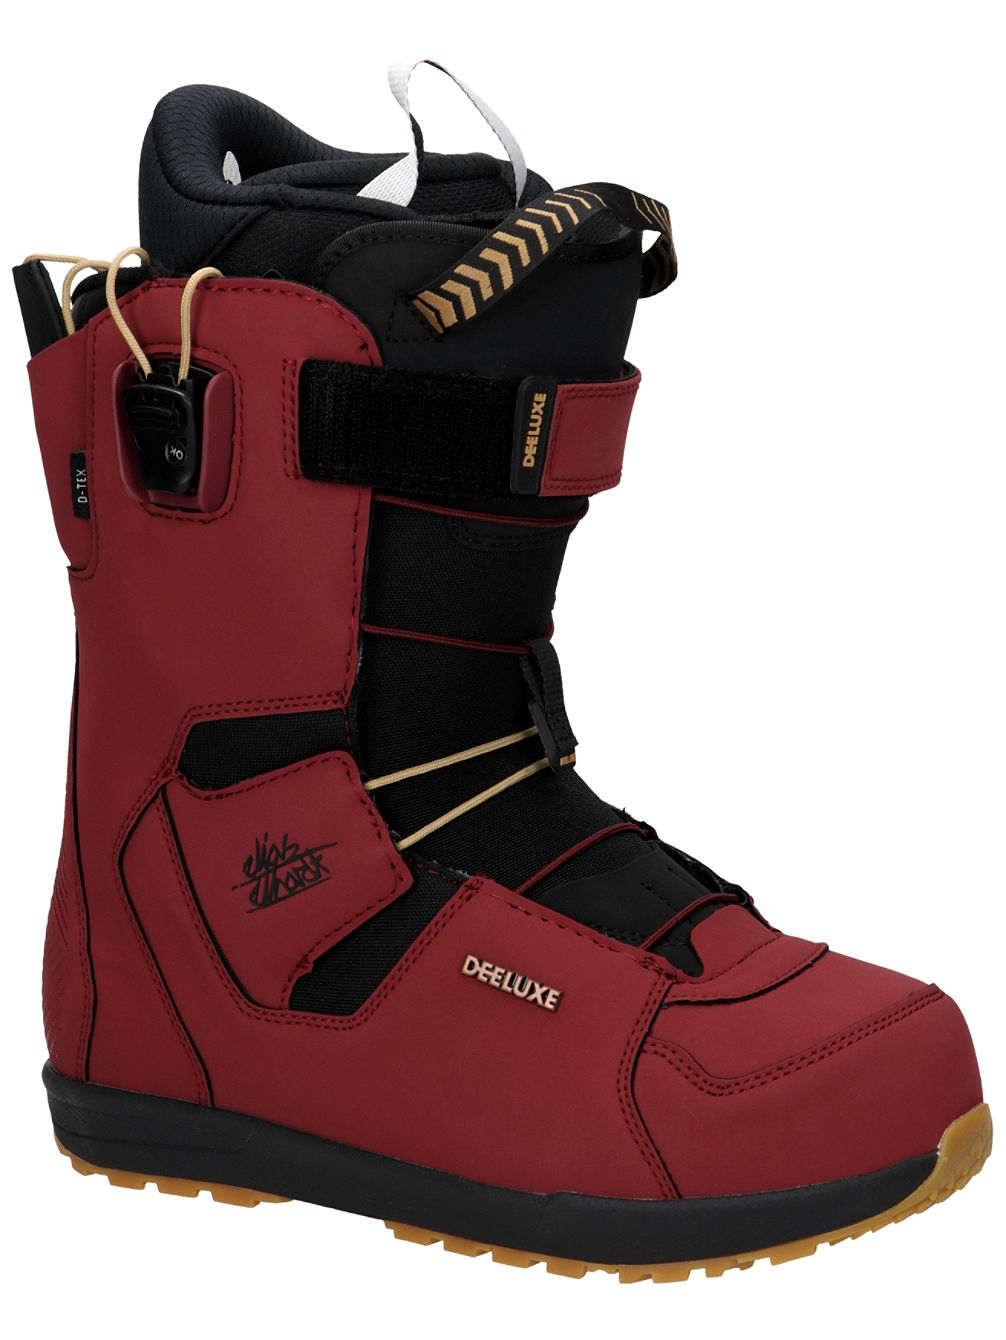 Deemon TF 2018 Snowboardboots